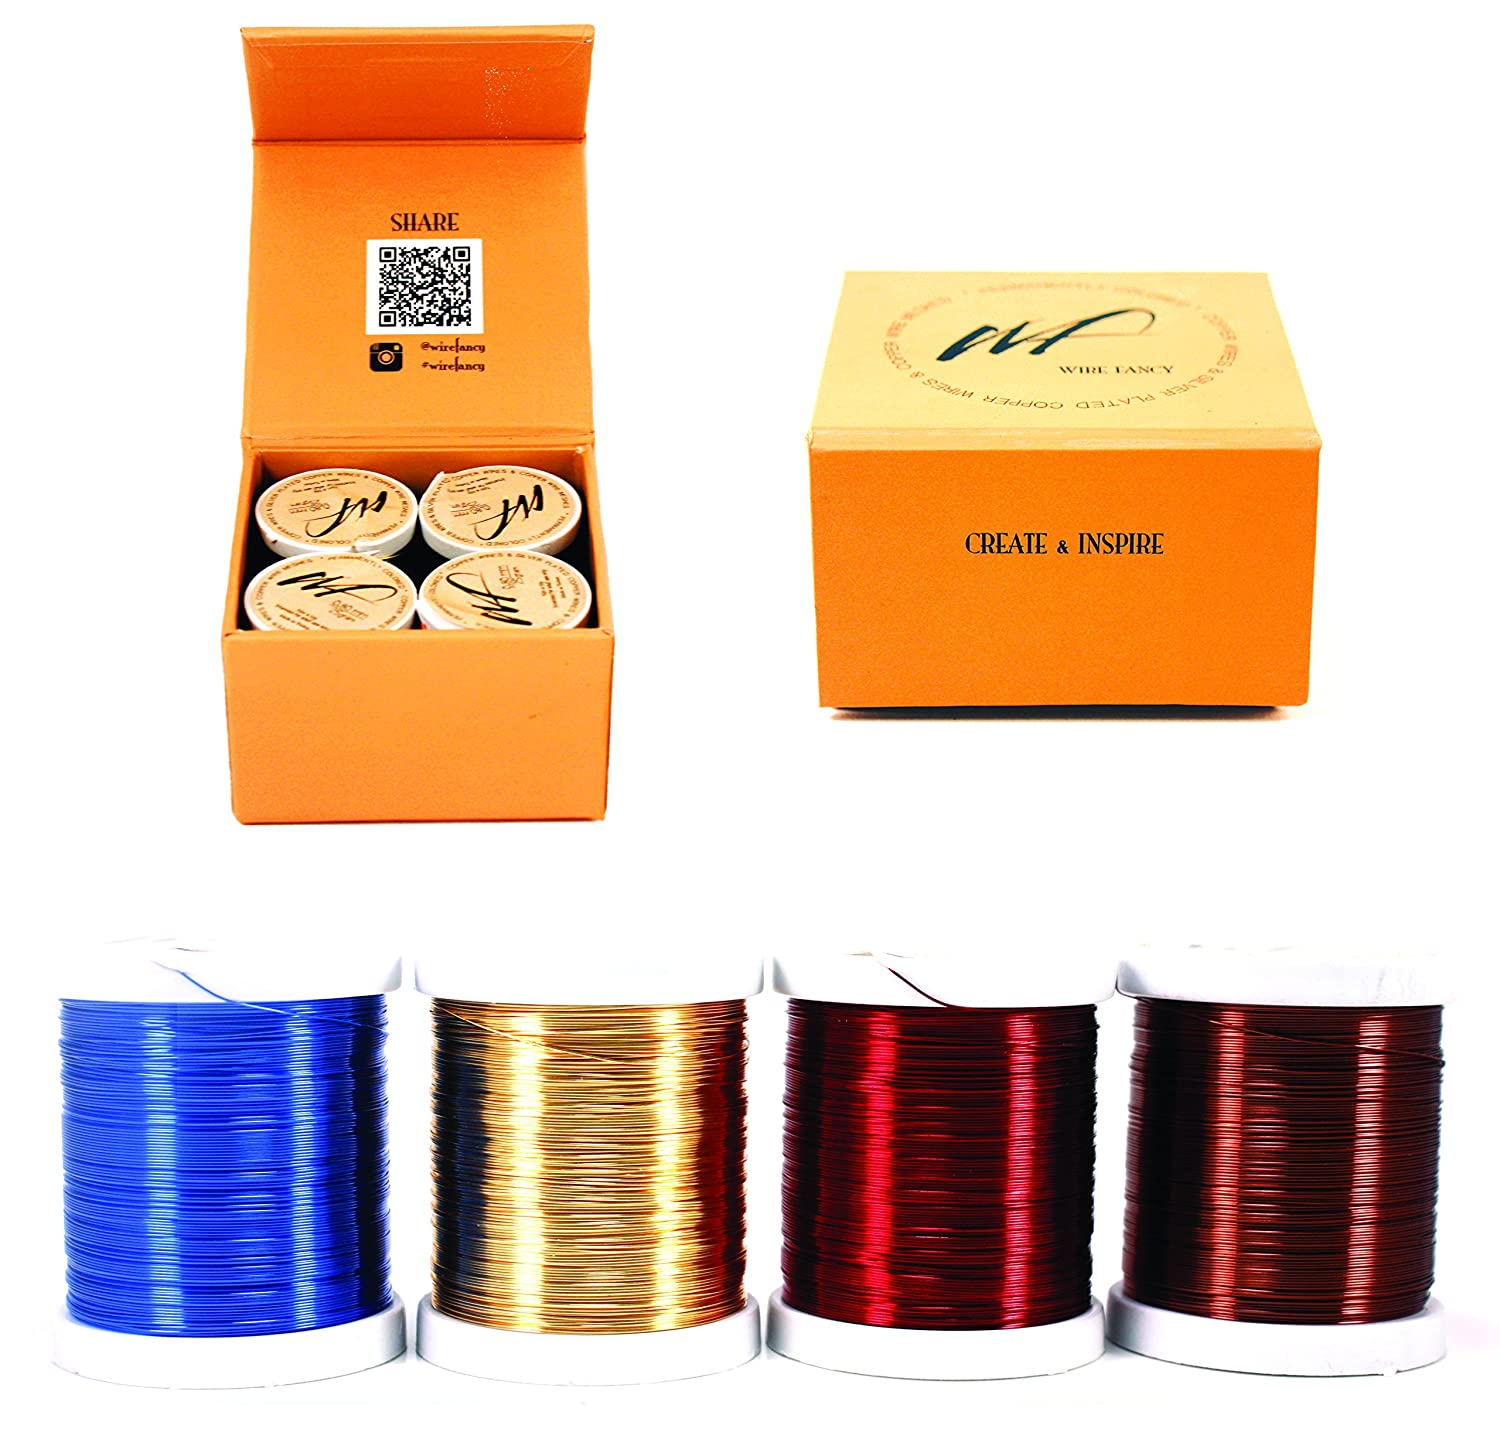 28 Gauge Tarnish Resistant Silver Plated Copper and Copper Wire Set of 4 spools. Thin Wire for Wrapping Jewelry Making Beading Floral Colored DIY Artistic Craft Wire kit (WF Color Set 1, 0.30 mm) Mersk